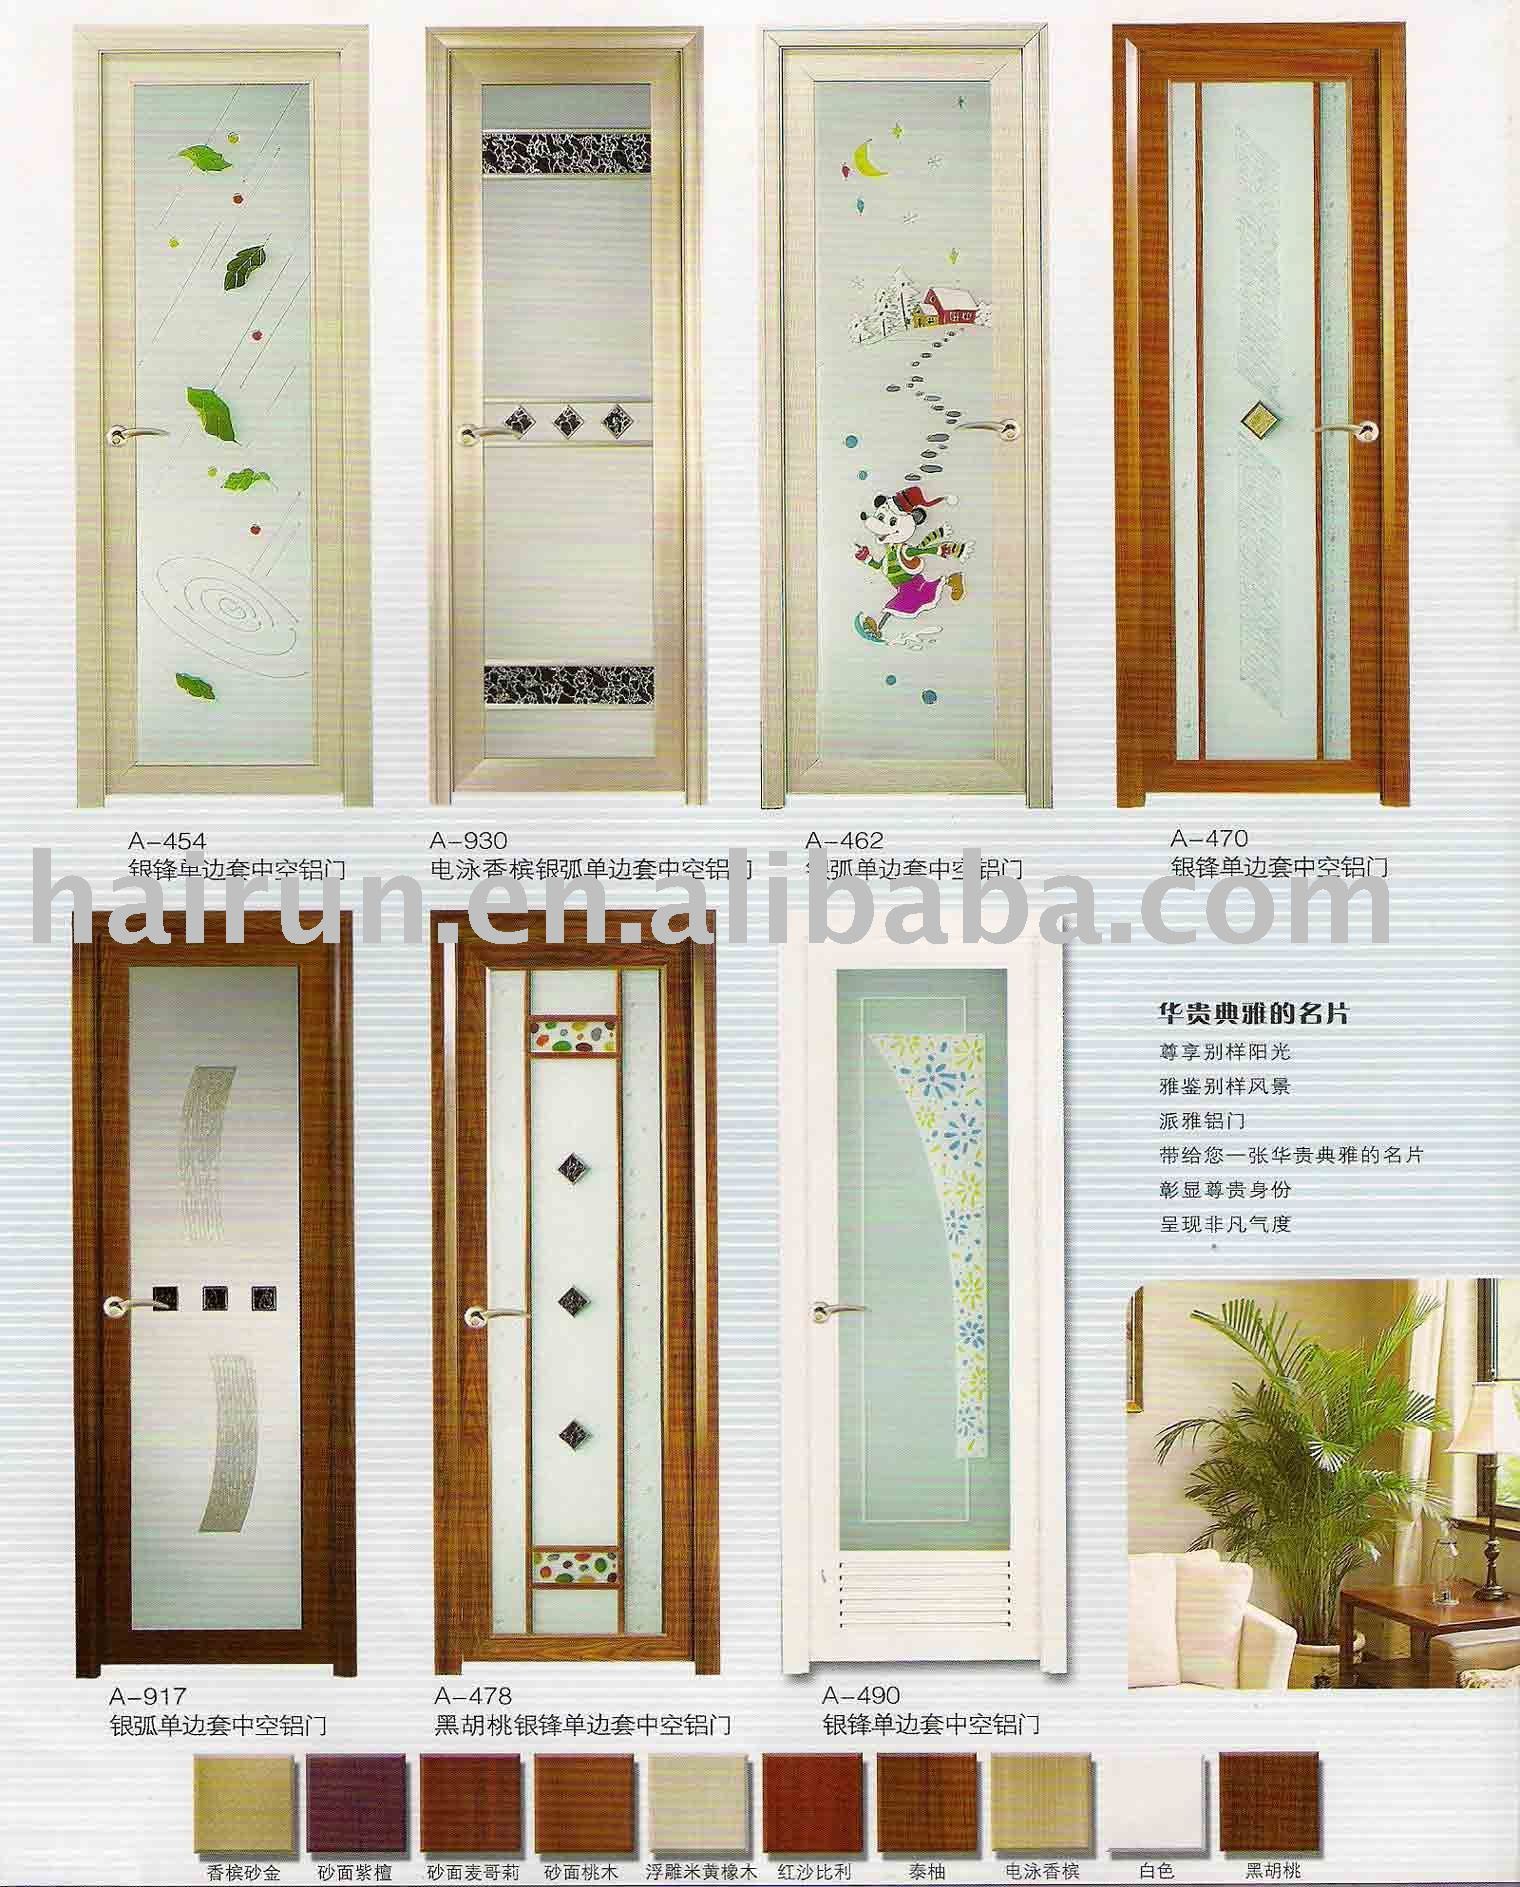 Sliding bathroom doors - large and beautiful photos. Photo to select ...